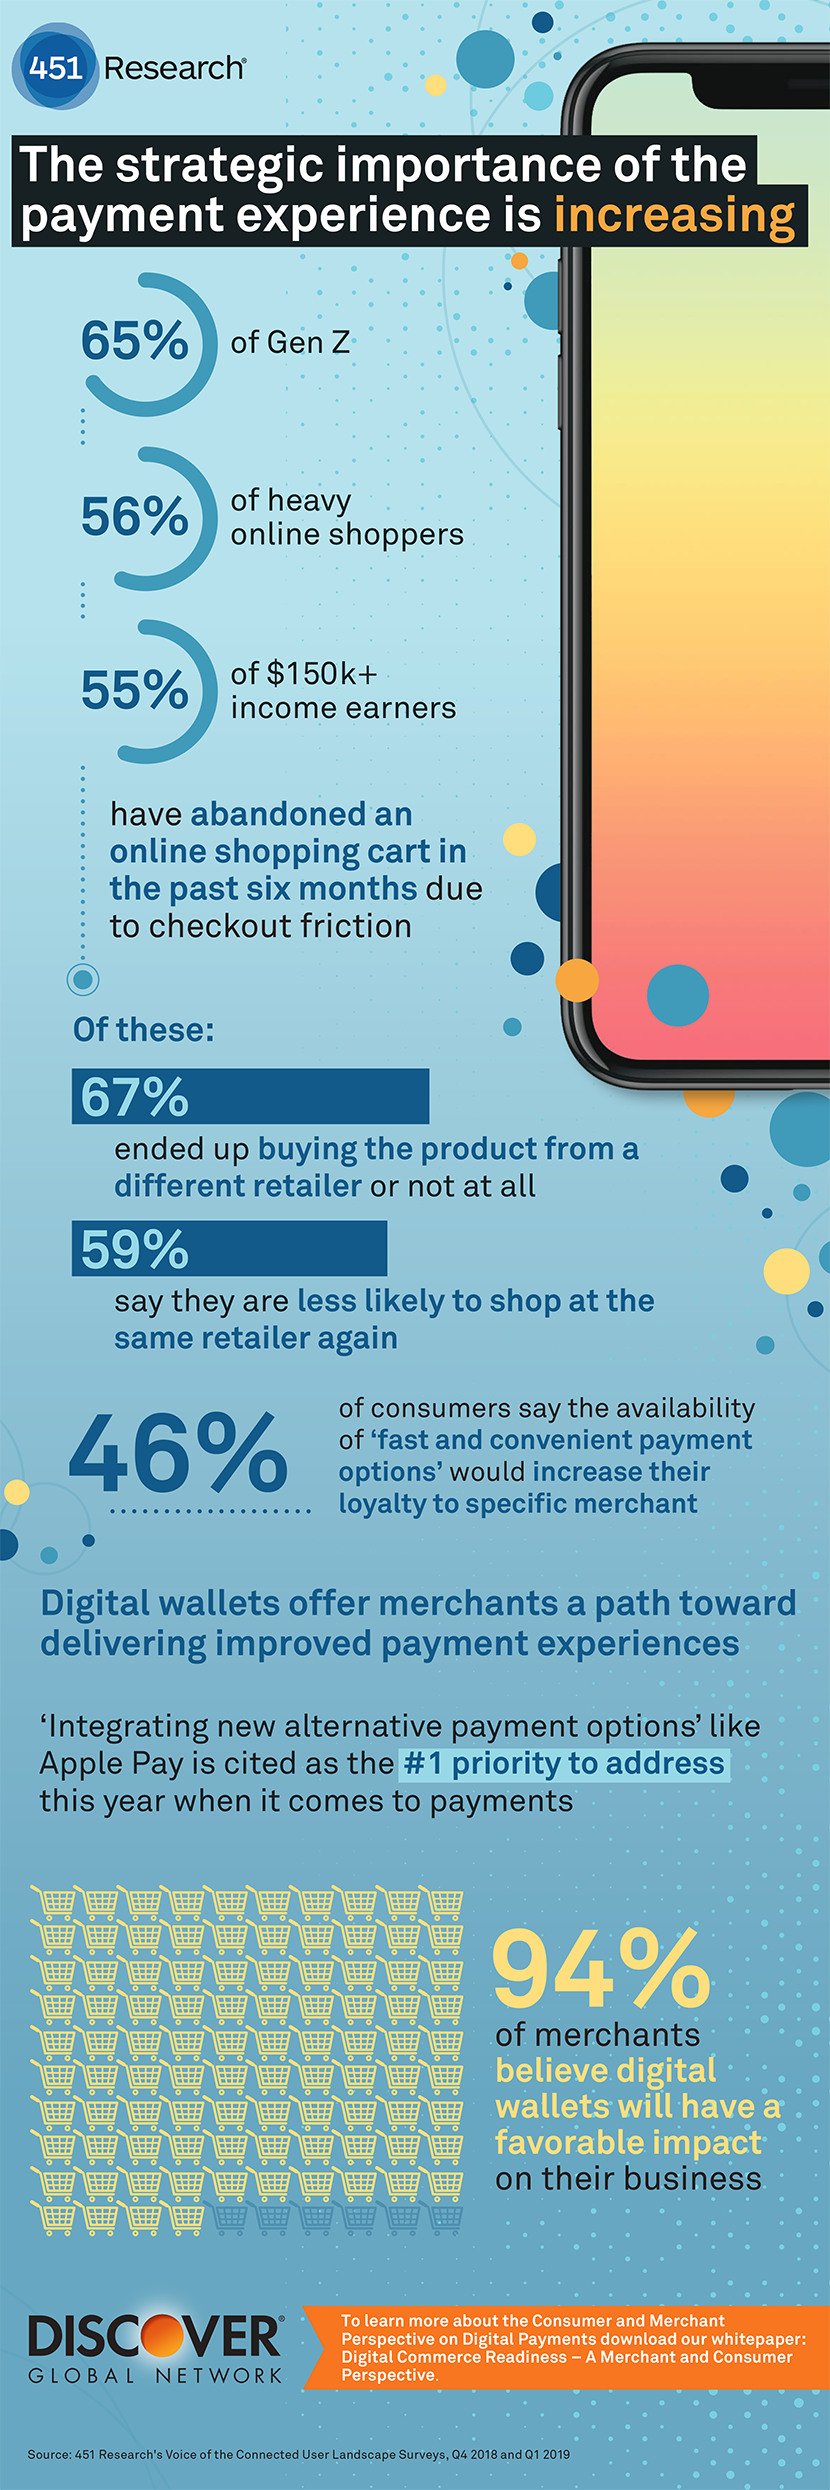 The Strategic Importance of the Payment Experience Infographic